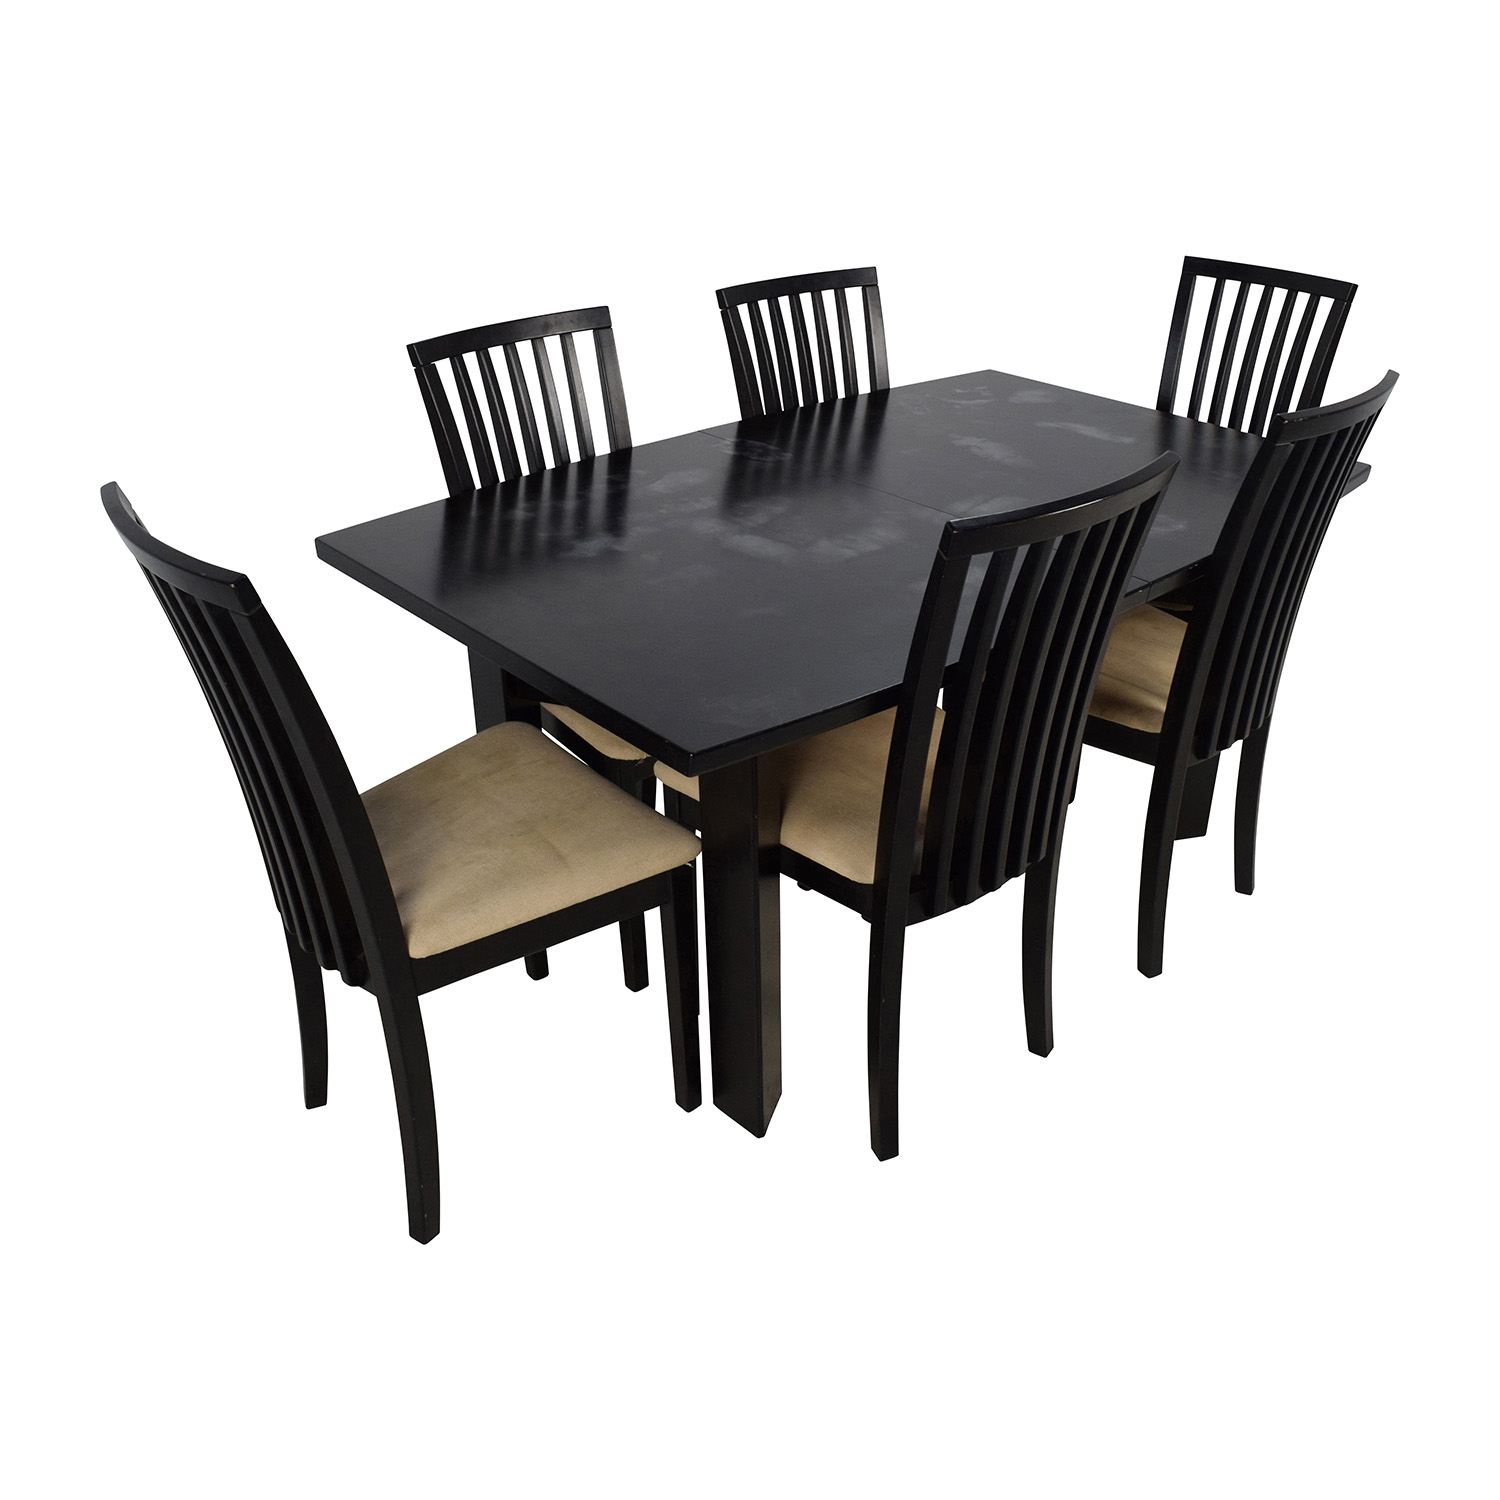 90 off skovby skovby sm 24 dining table with butterfly for Dining table with 6 chairs cheap